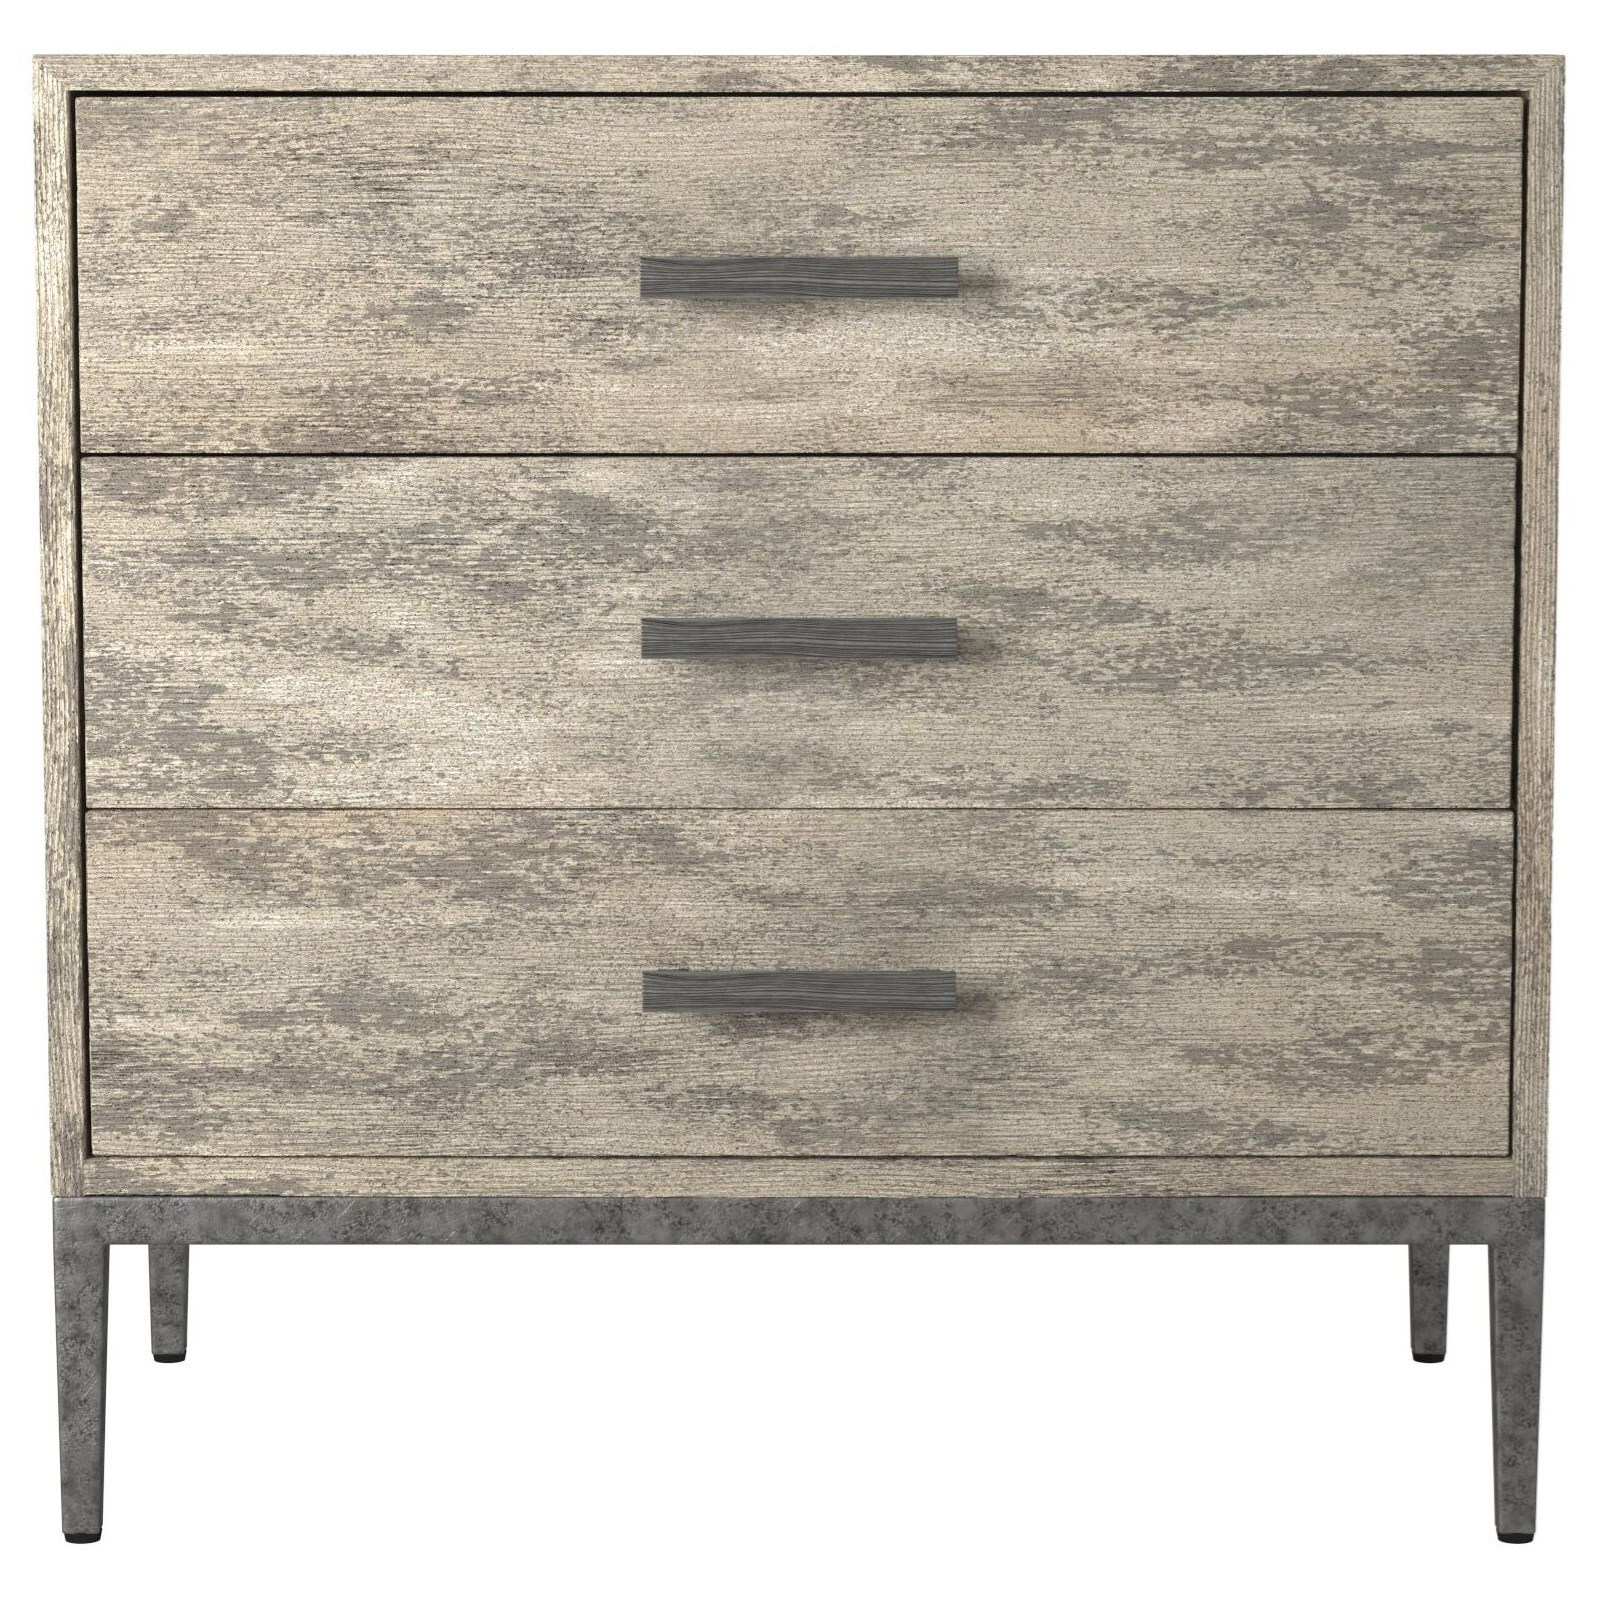 Cameron Nightstand by Stanley Furniture at Alison Craig Home Furnishings